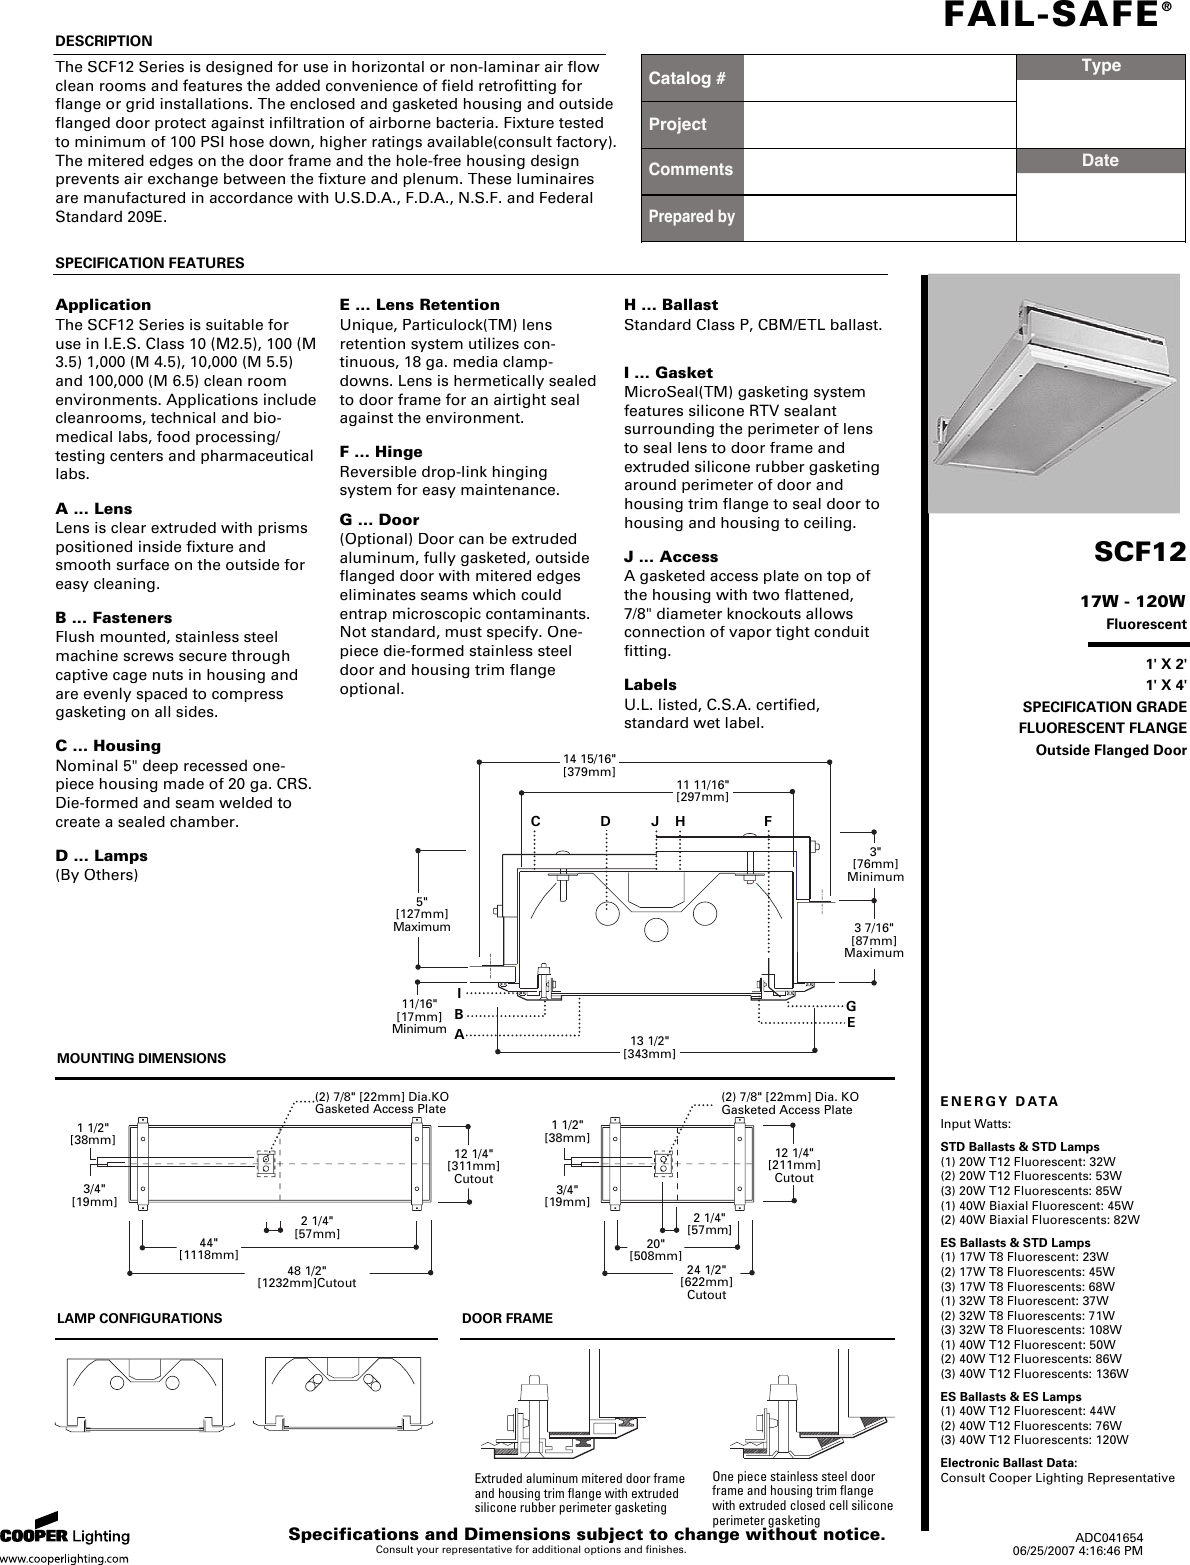 Cooper Lighting Fail Safe Scf12 Users Manual Annotatelumiere